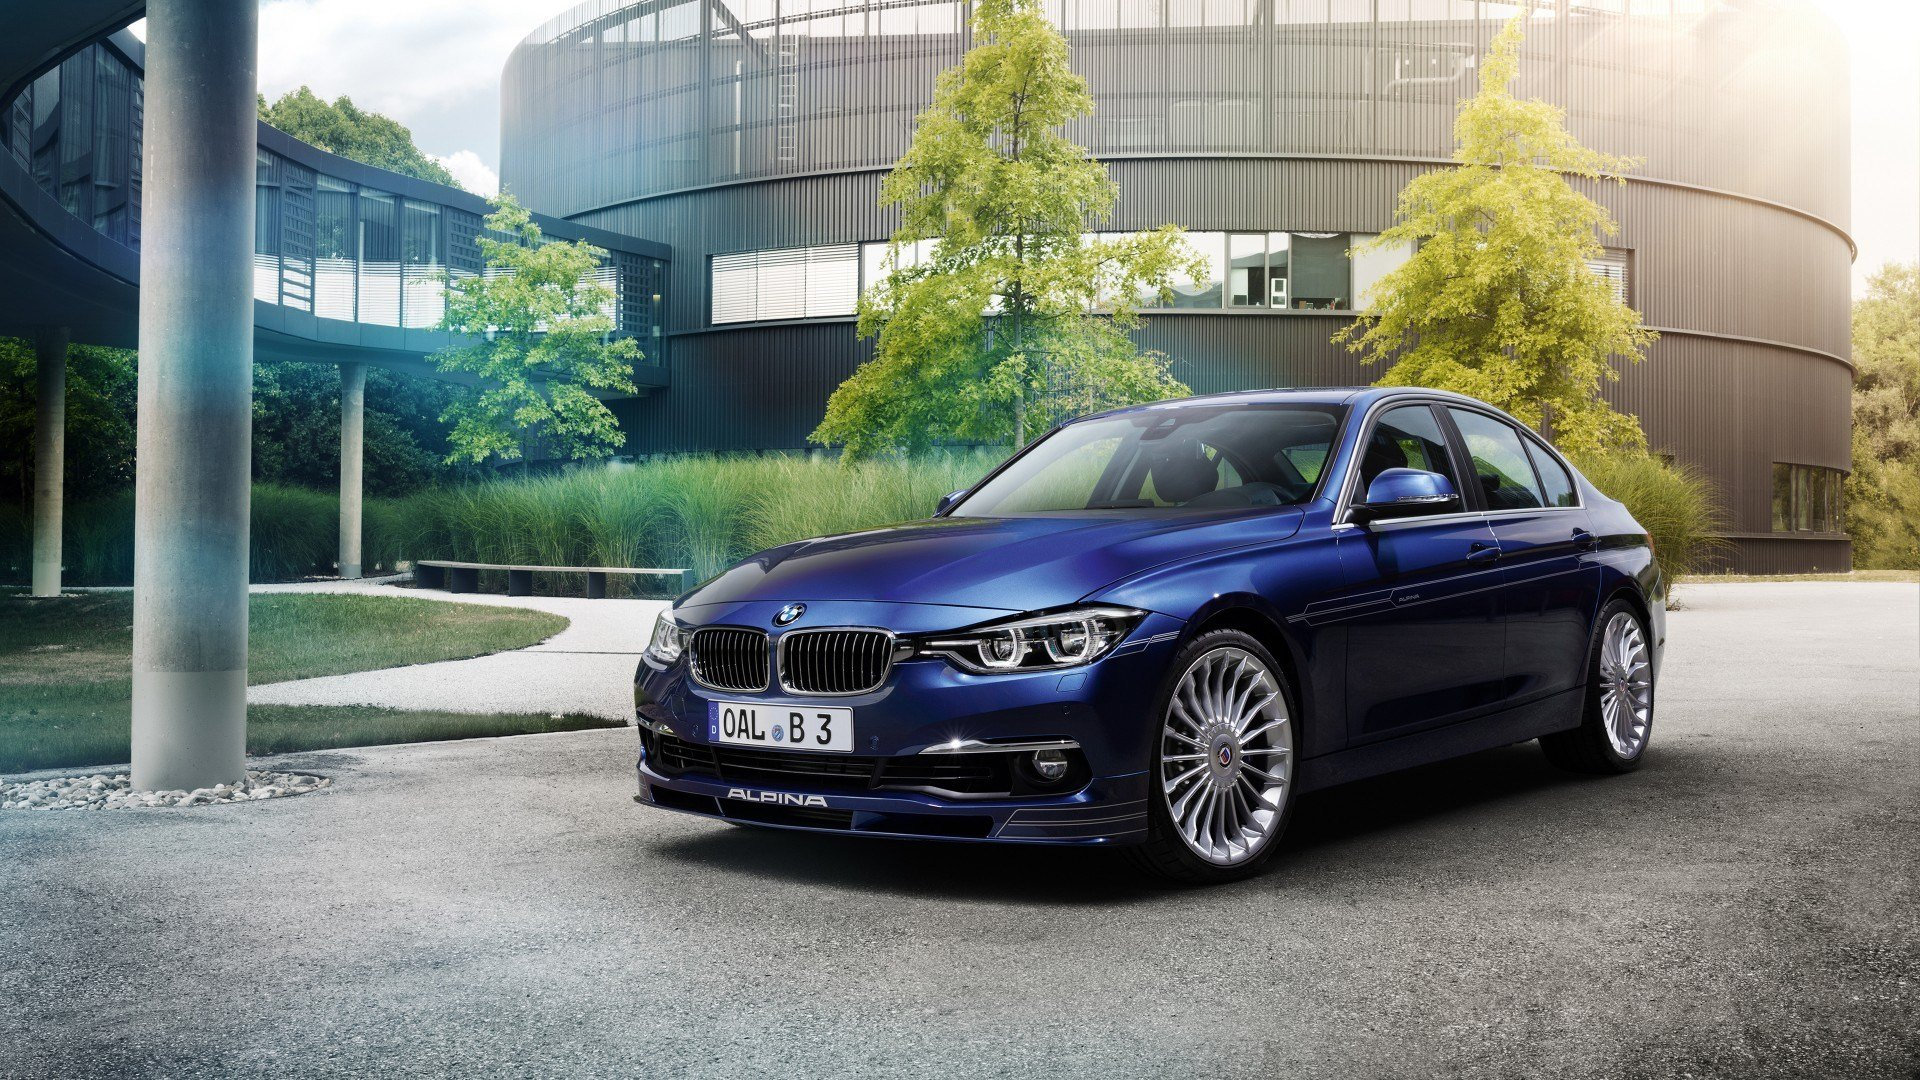 Latest 2015 Alpina B3 Bmw 3 Series Wallpaper Hd Car Wallpapers Free Download